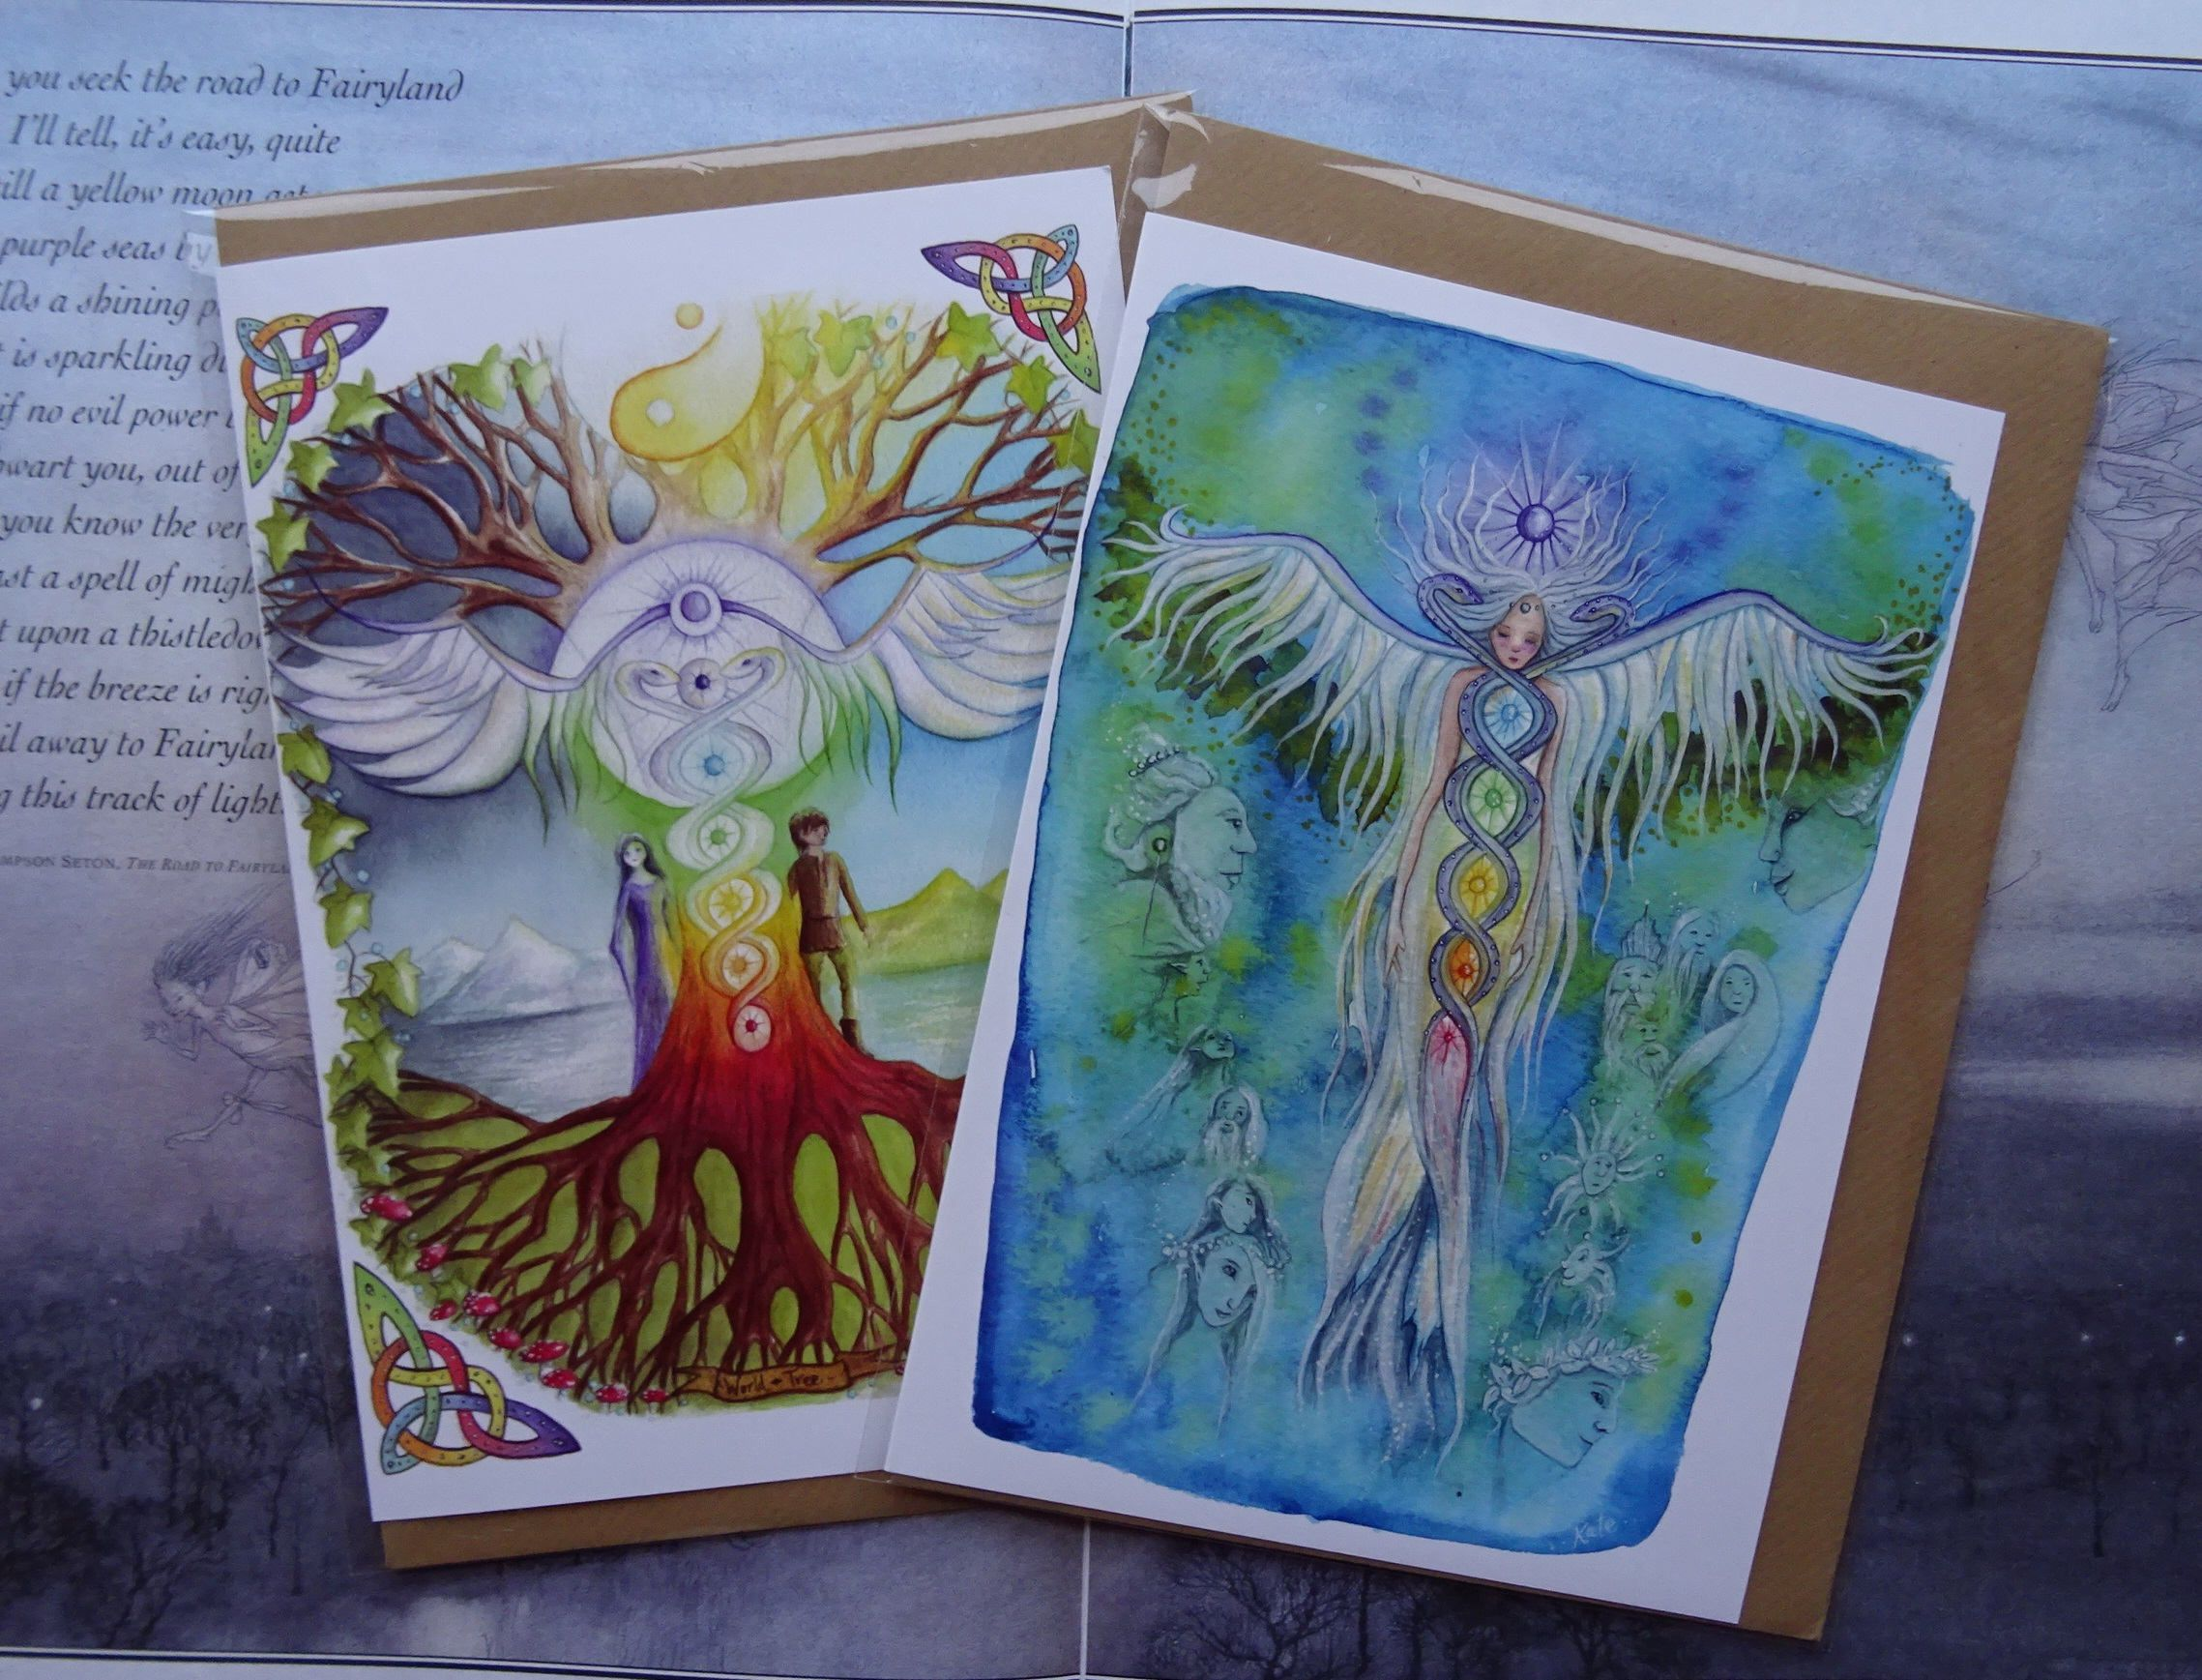 Rainbow chakra pack of 2 a5 art cards greetings cardschakra rainbow chakra pack of 2 a5 art cards greetings cardschakra world tree celtic art angel art spiritual art new age cards angel cards kristyandbryce Image collections